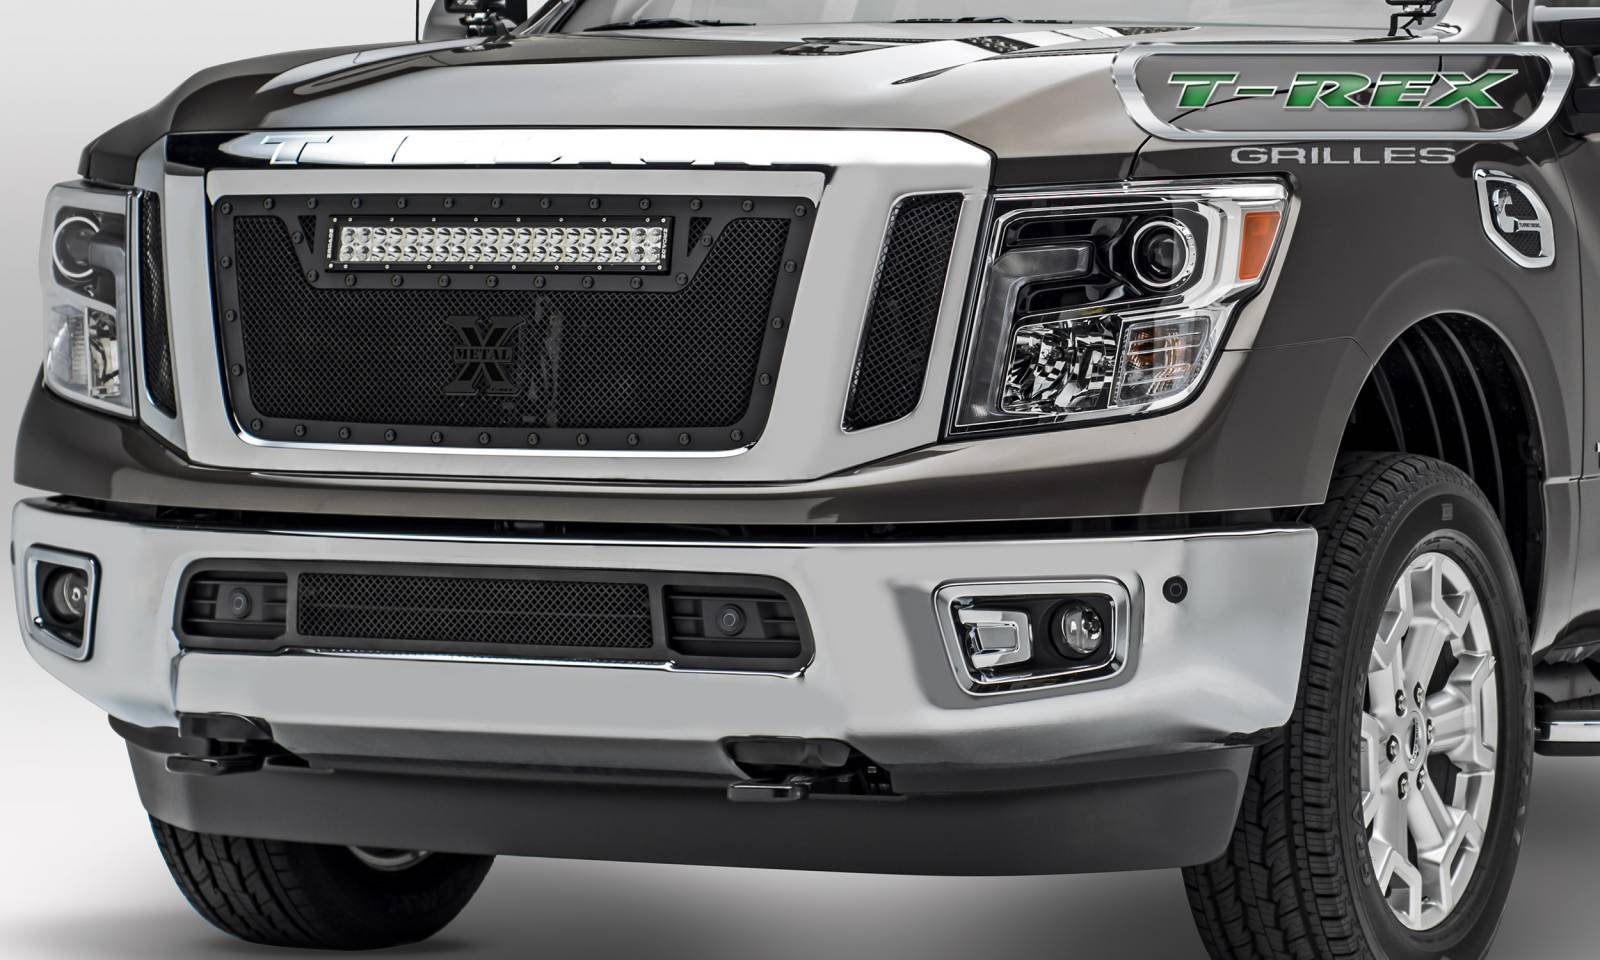 Nissan titan torch grille nissan titan torch stealth 3 pc insert main grille w 1 20 led light bar black pt 6317851 br mozeypictures Image collections